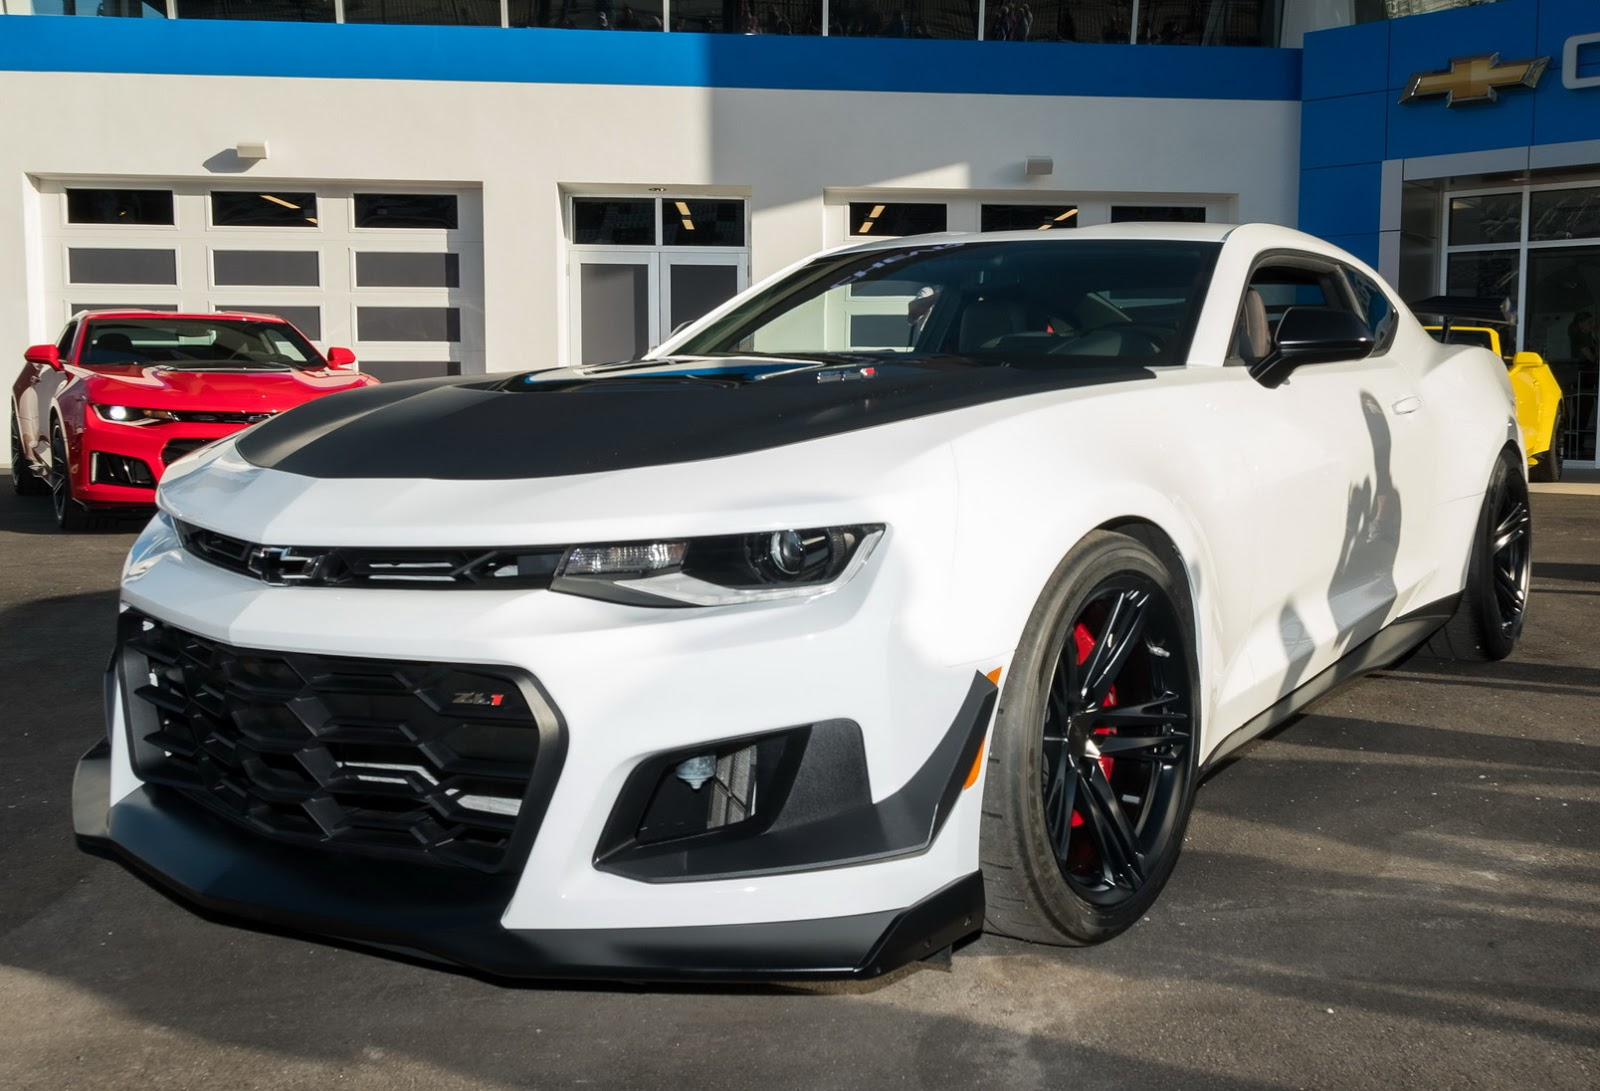 2018 Chevrolet Camaro Zl1 1le Imagined As A Convertible